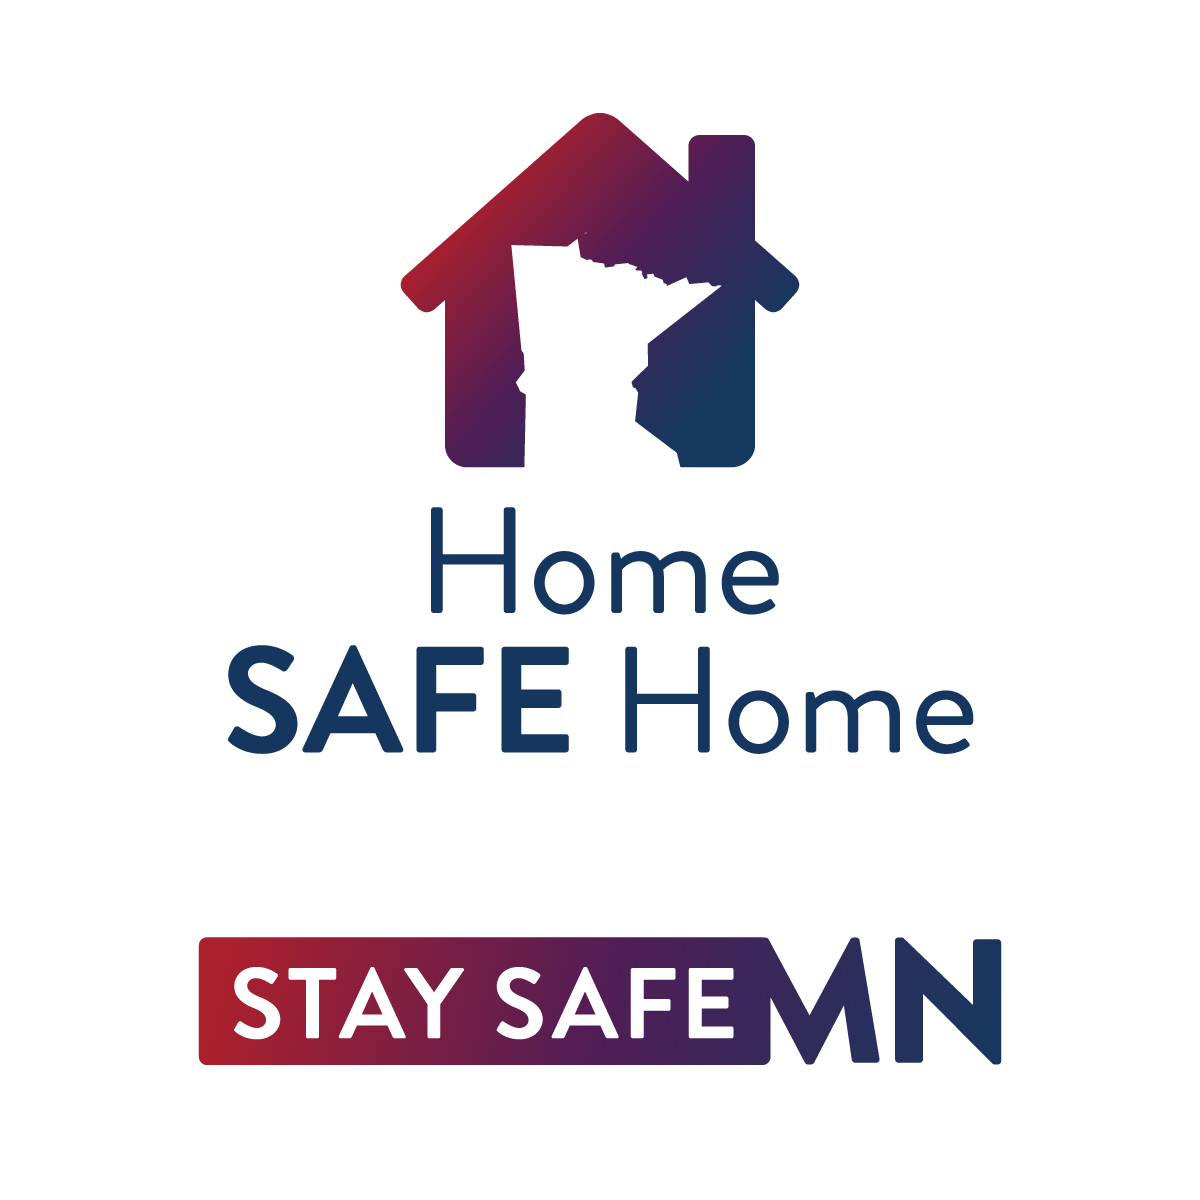 Home Safe Home. Stay Safe Minnesota.